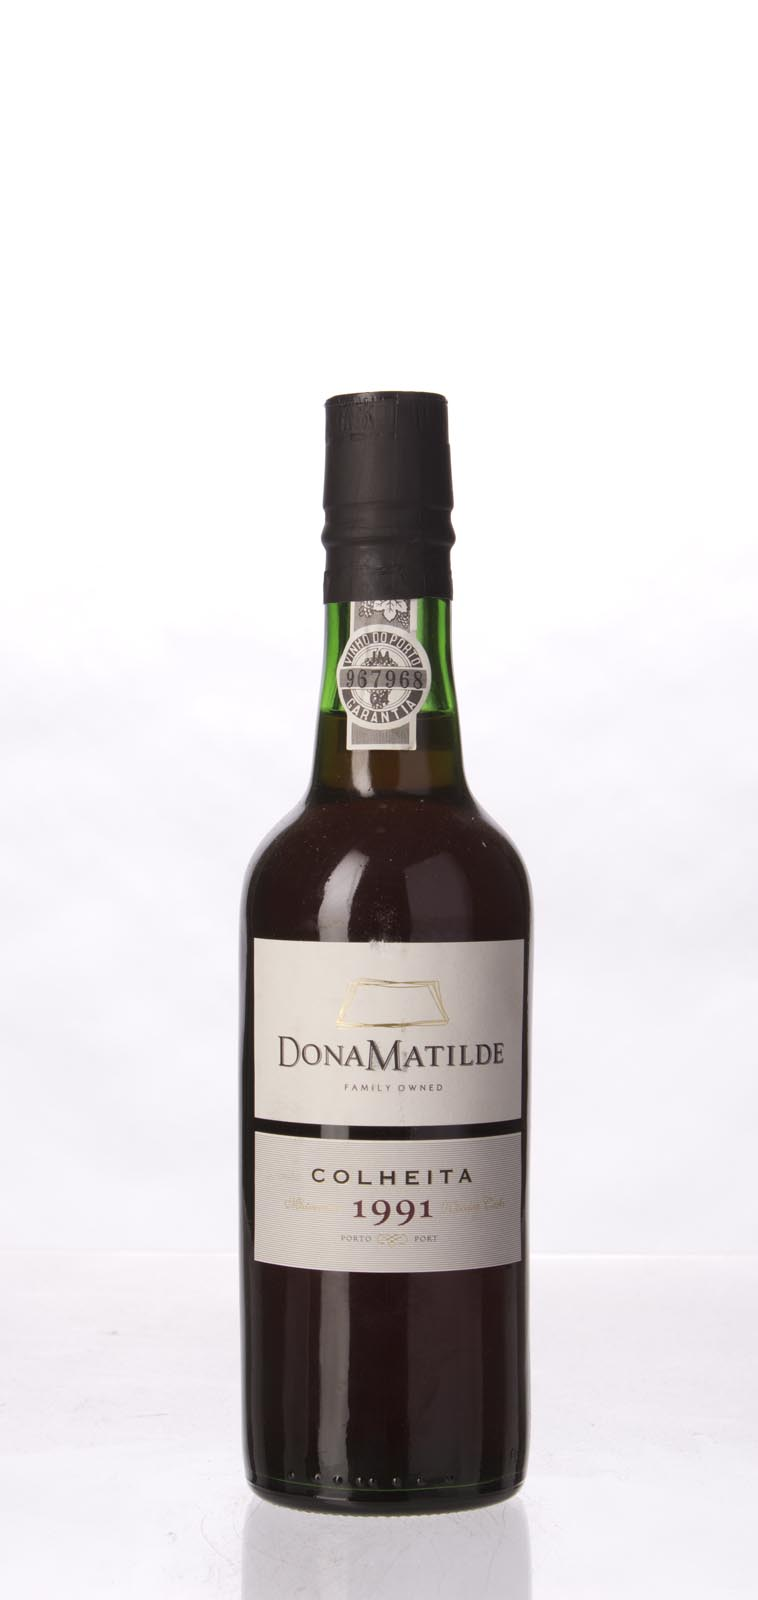 Kopke Colheita Dona Mattilde Port 1991, 375ml (RH93) from The BPW - Merchants of rare and fine wines.